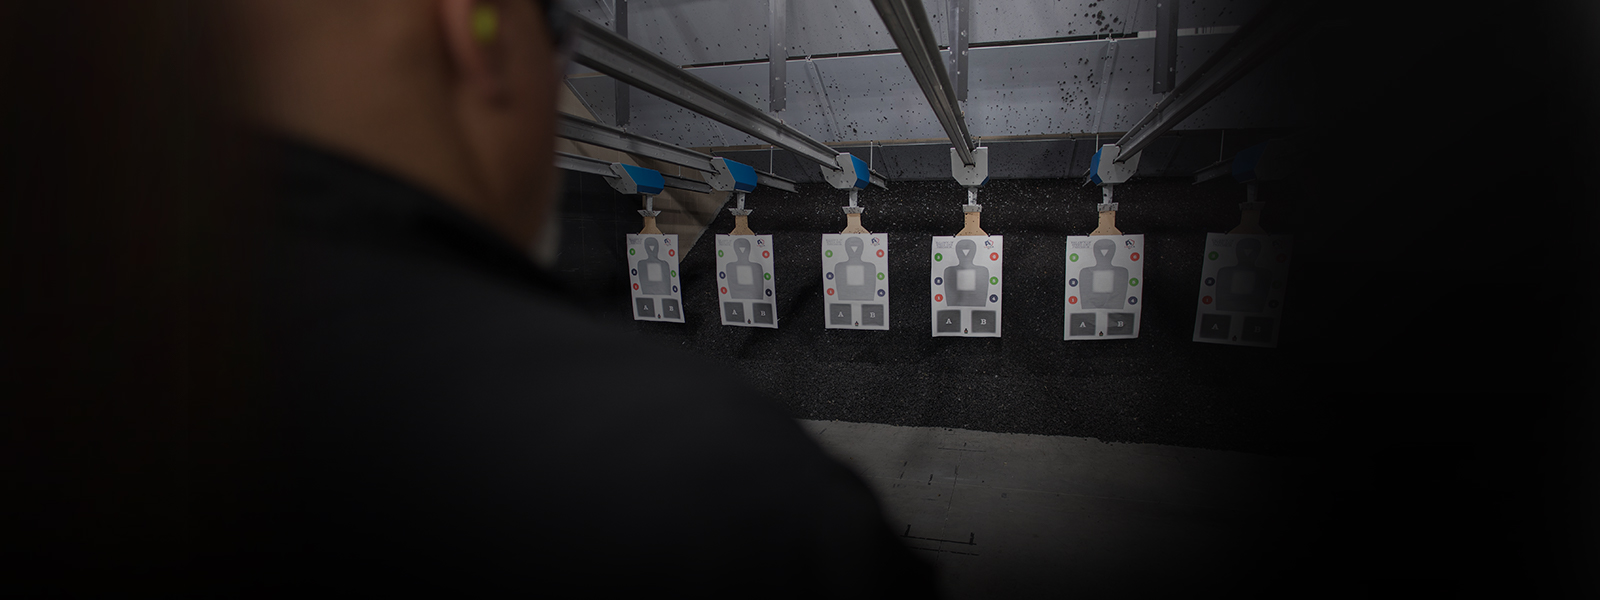 Mastering Your Handgun Confidence: Essentials of Ownership & Marksmanship